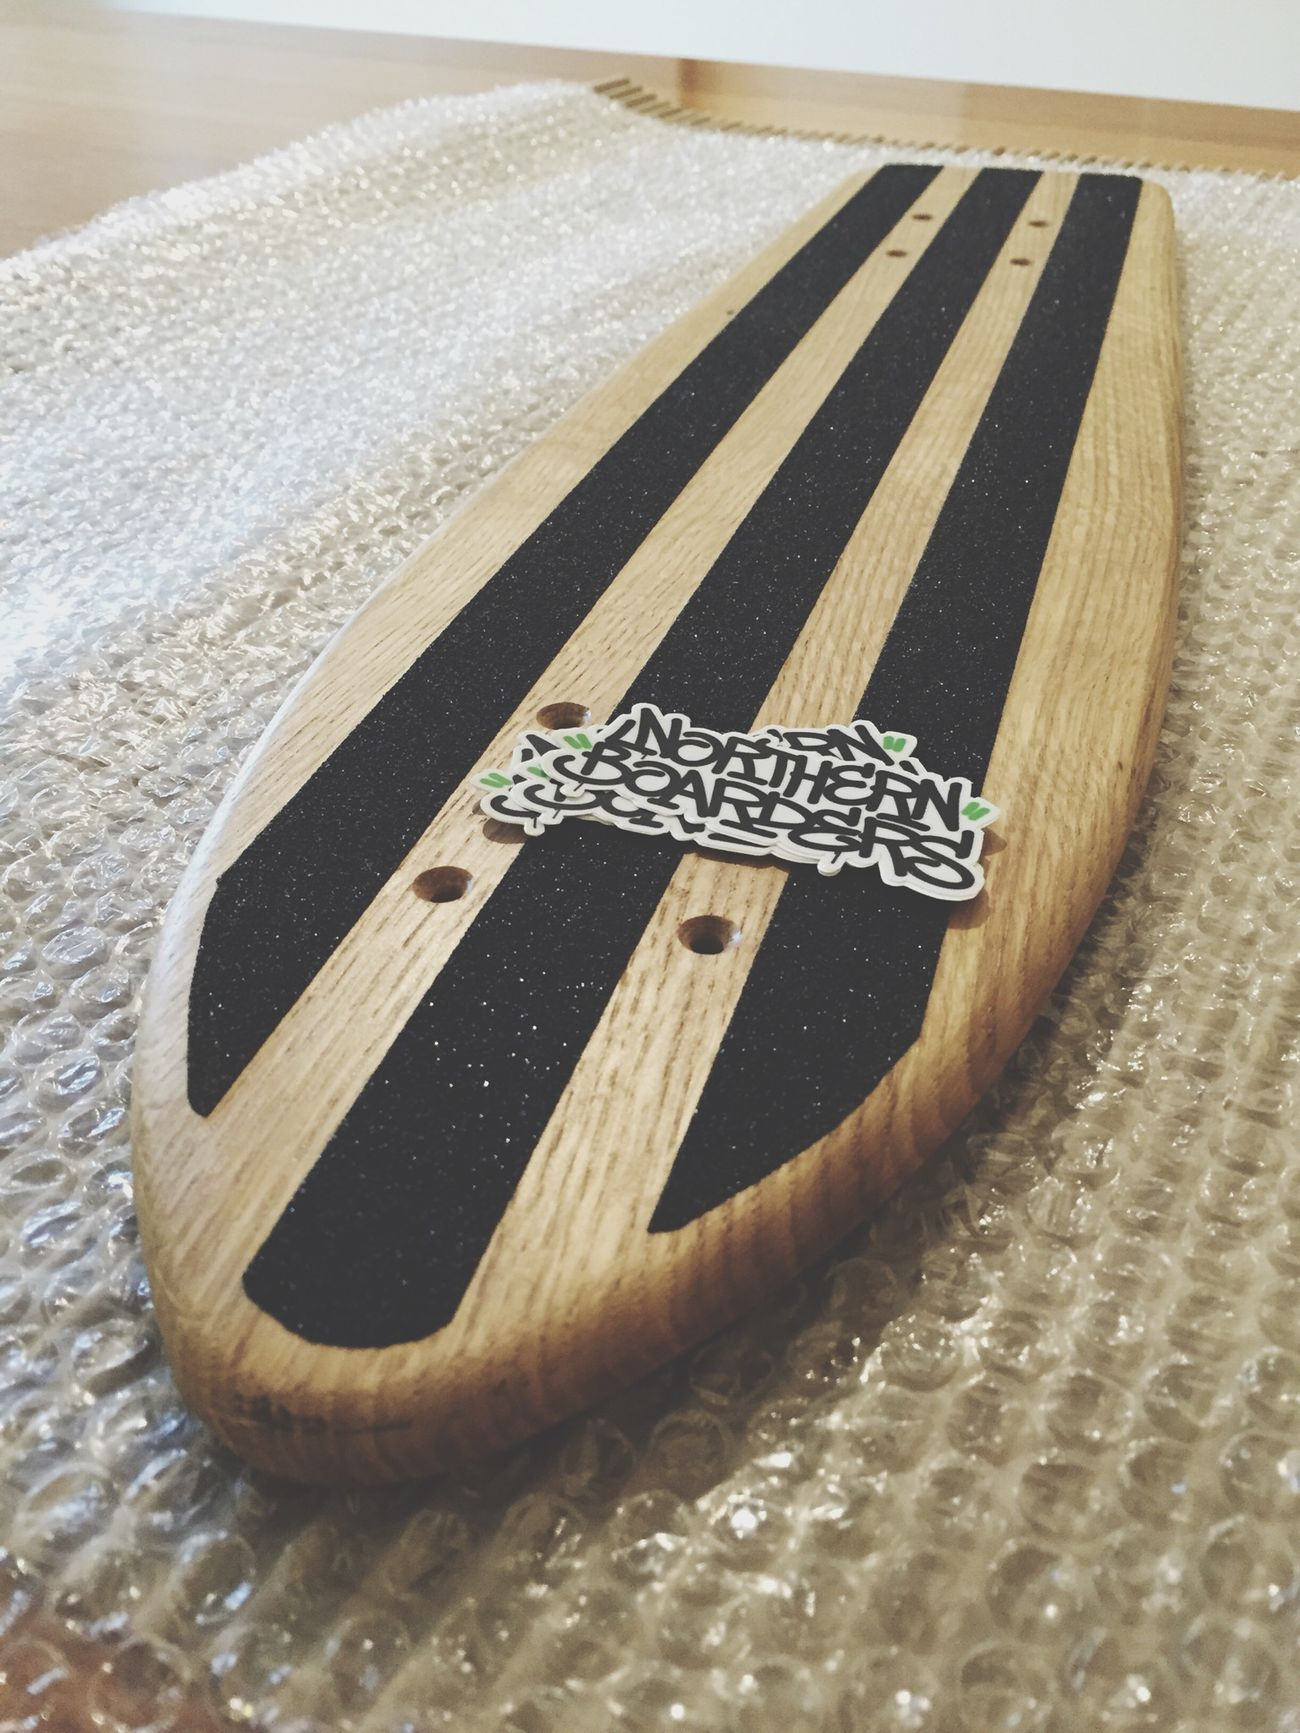 Skate Northernboarders Handmade Oak Getwood hello@northernboarders.co.uk